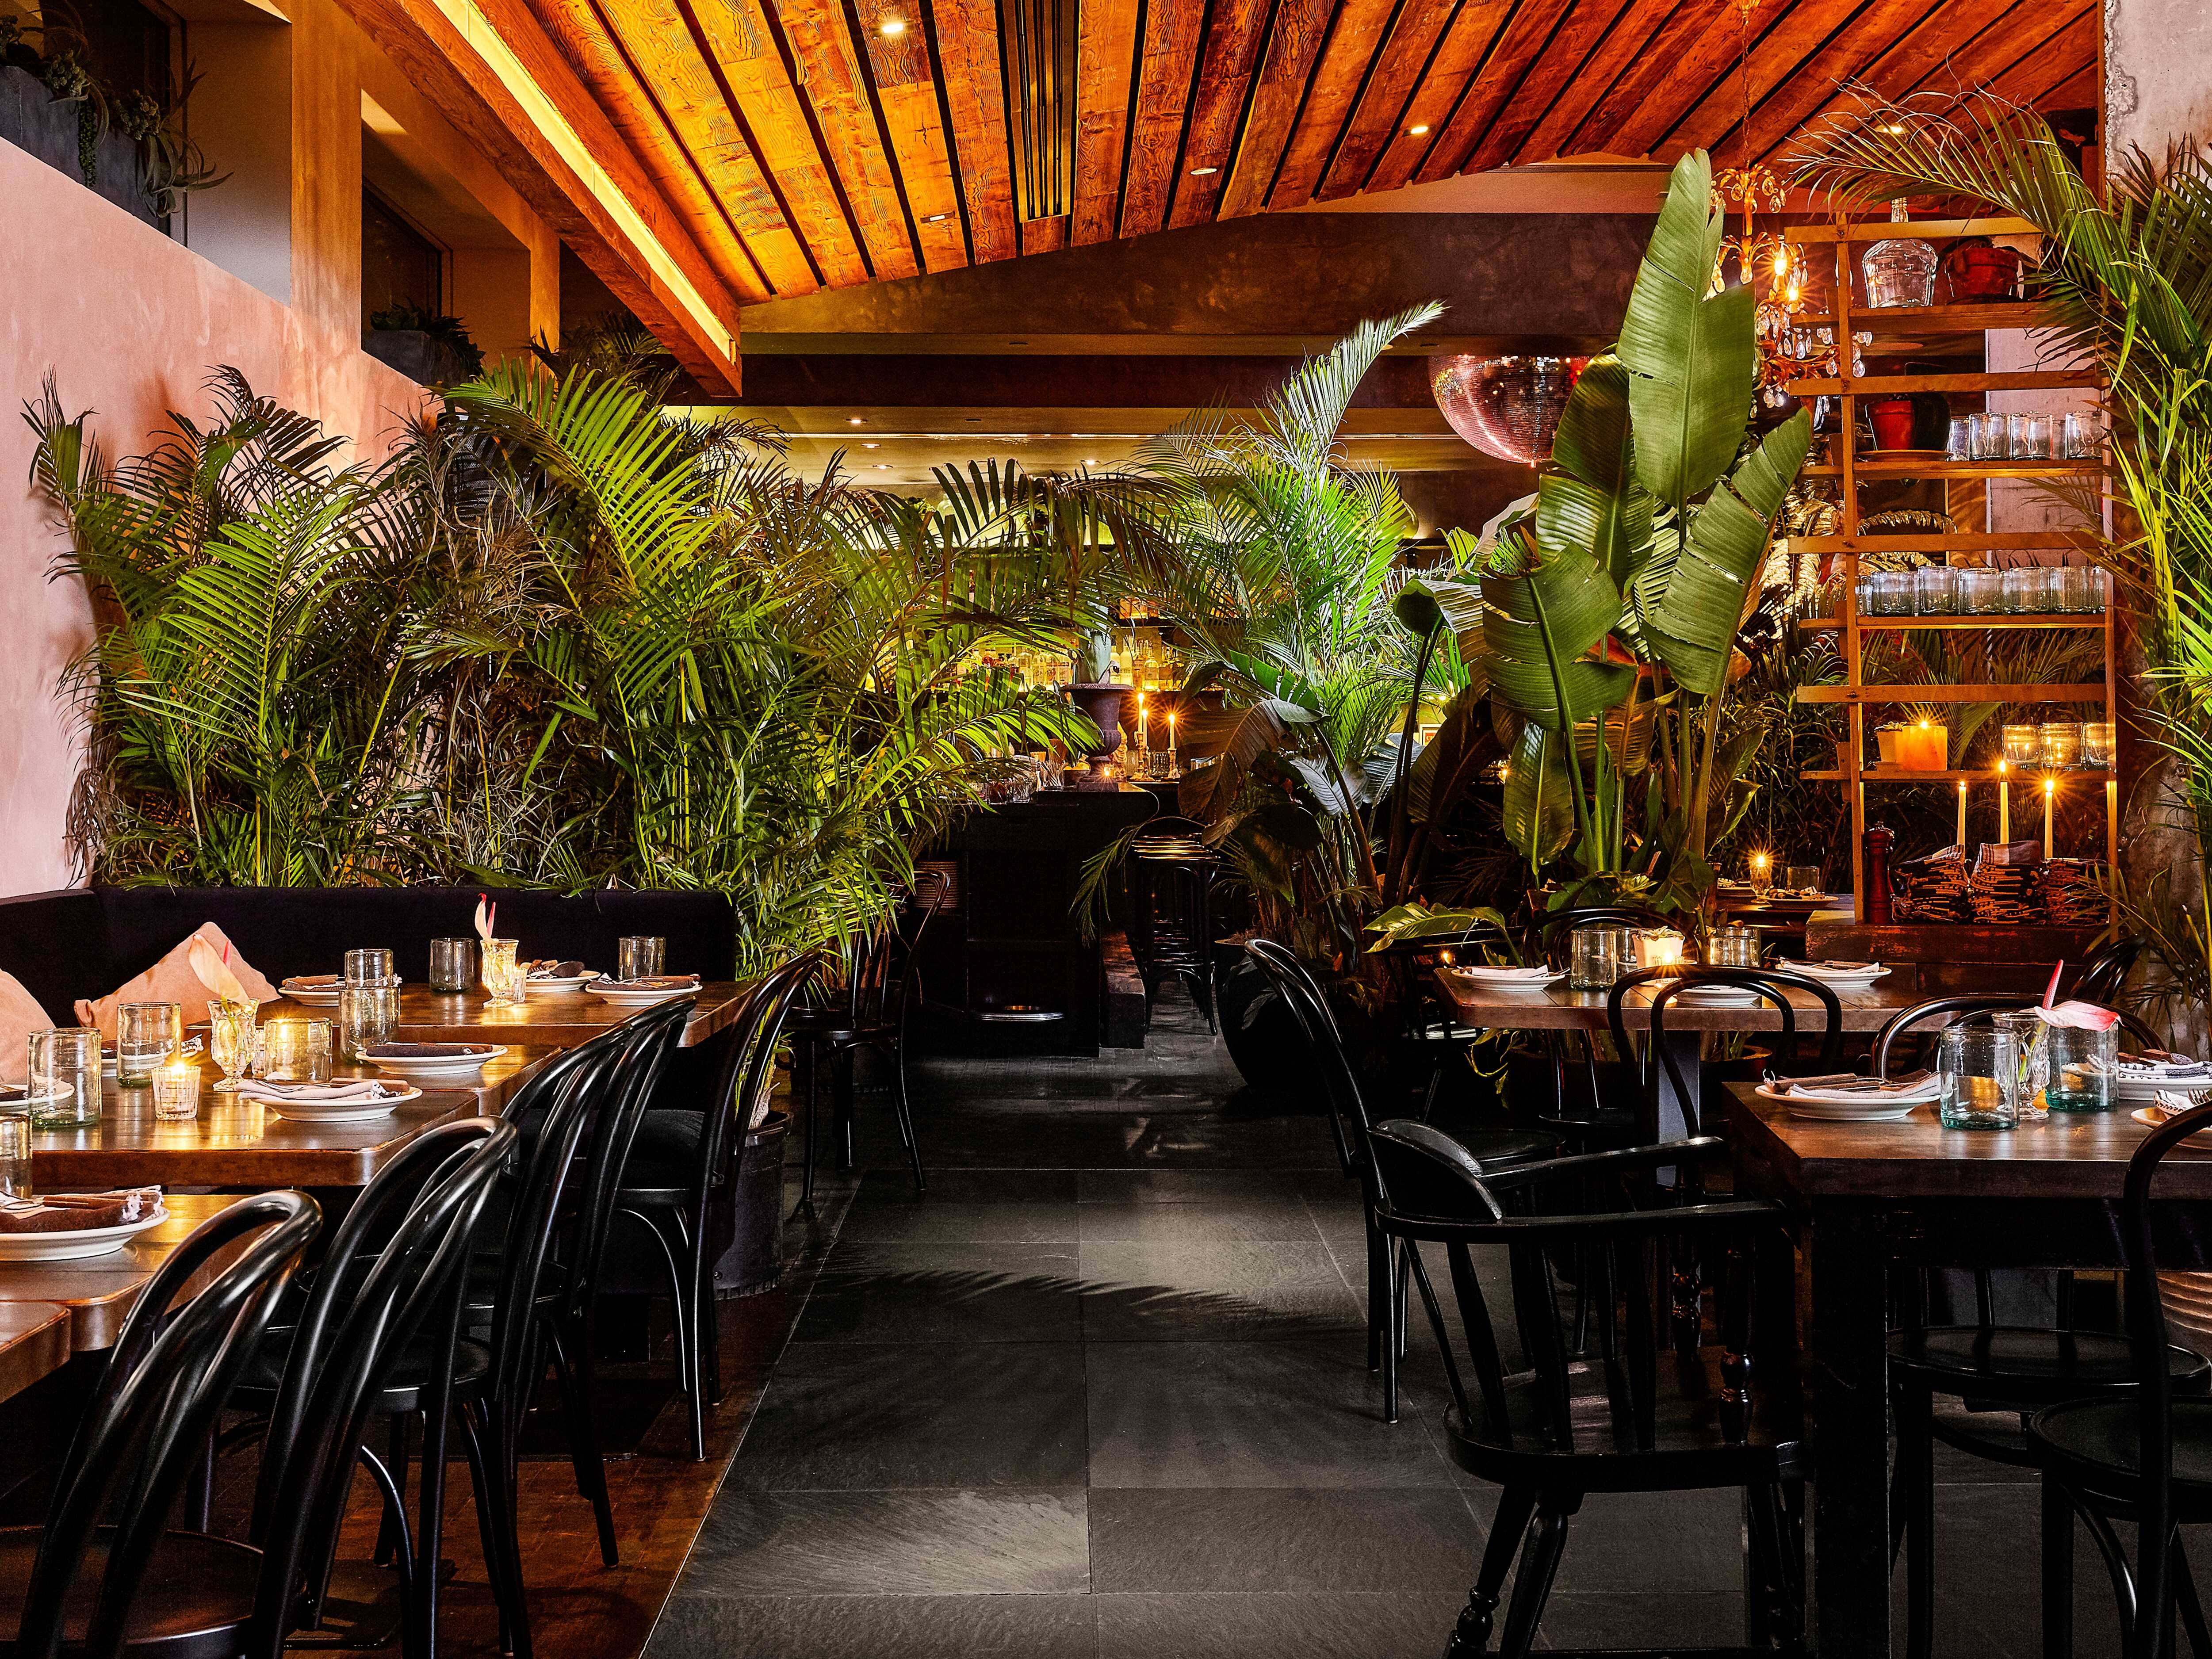 Tables and chairs inside GITANO with greenery surrounding interior